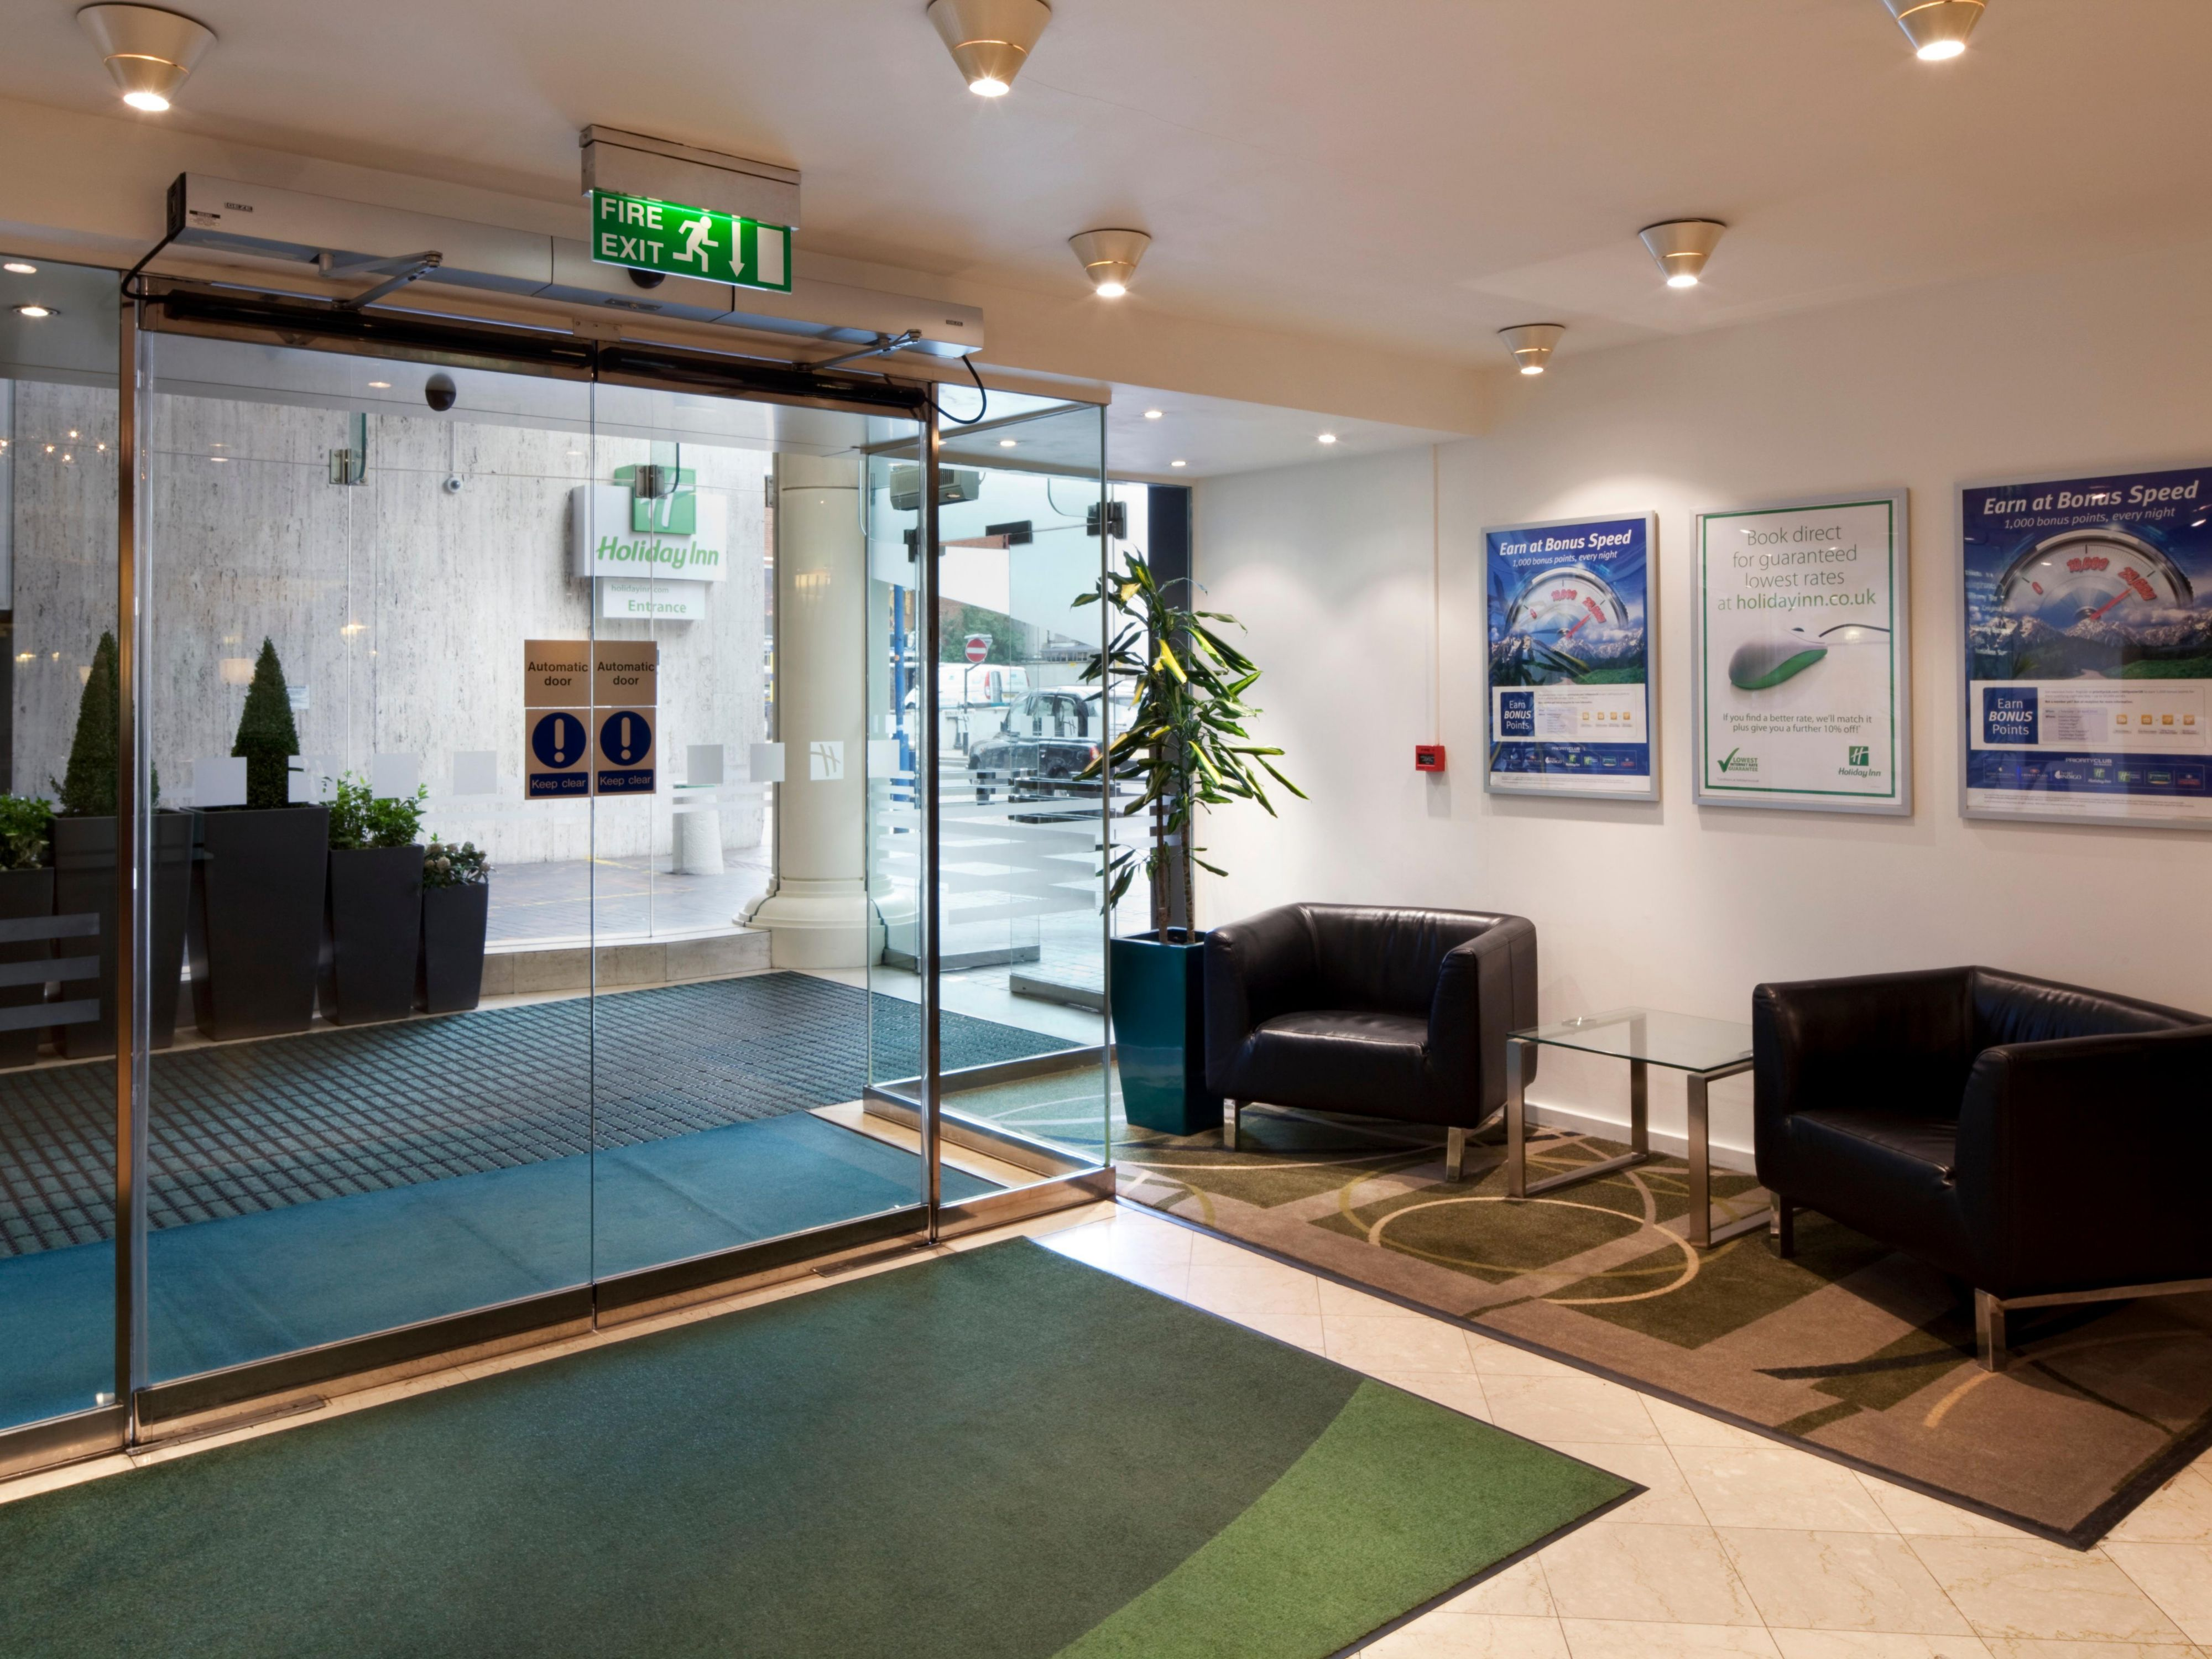 Hotel Lobby 2 minutes from New Street Train Station